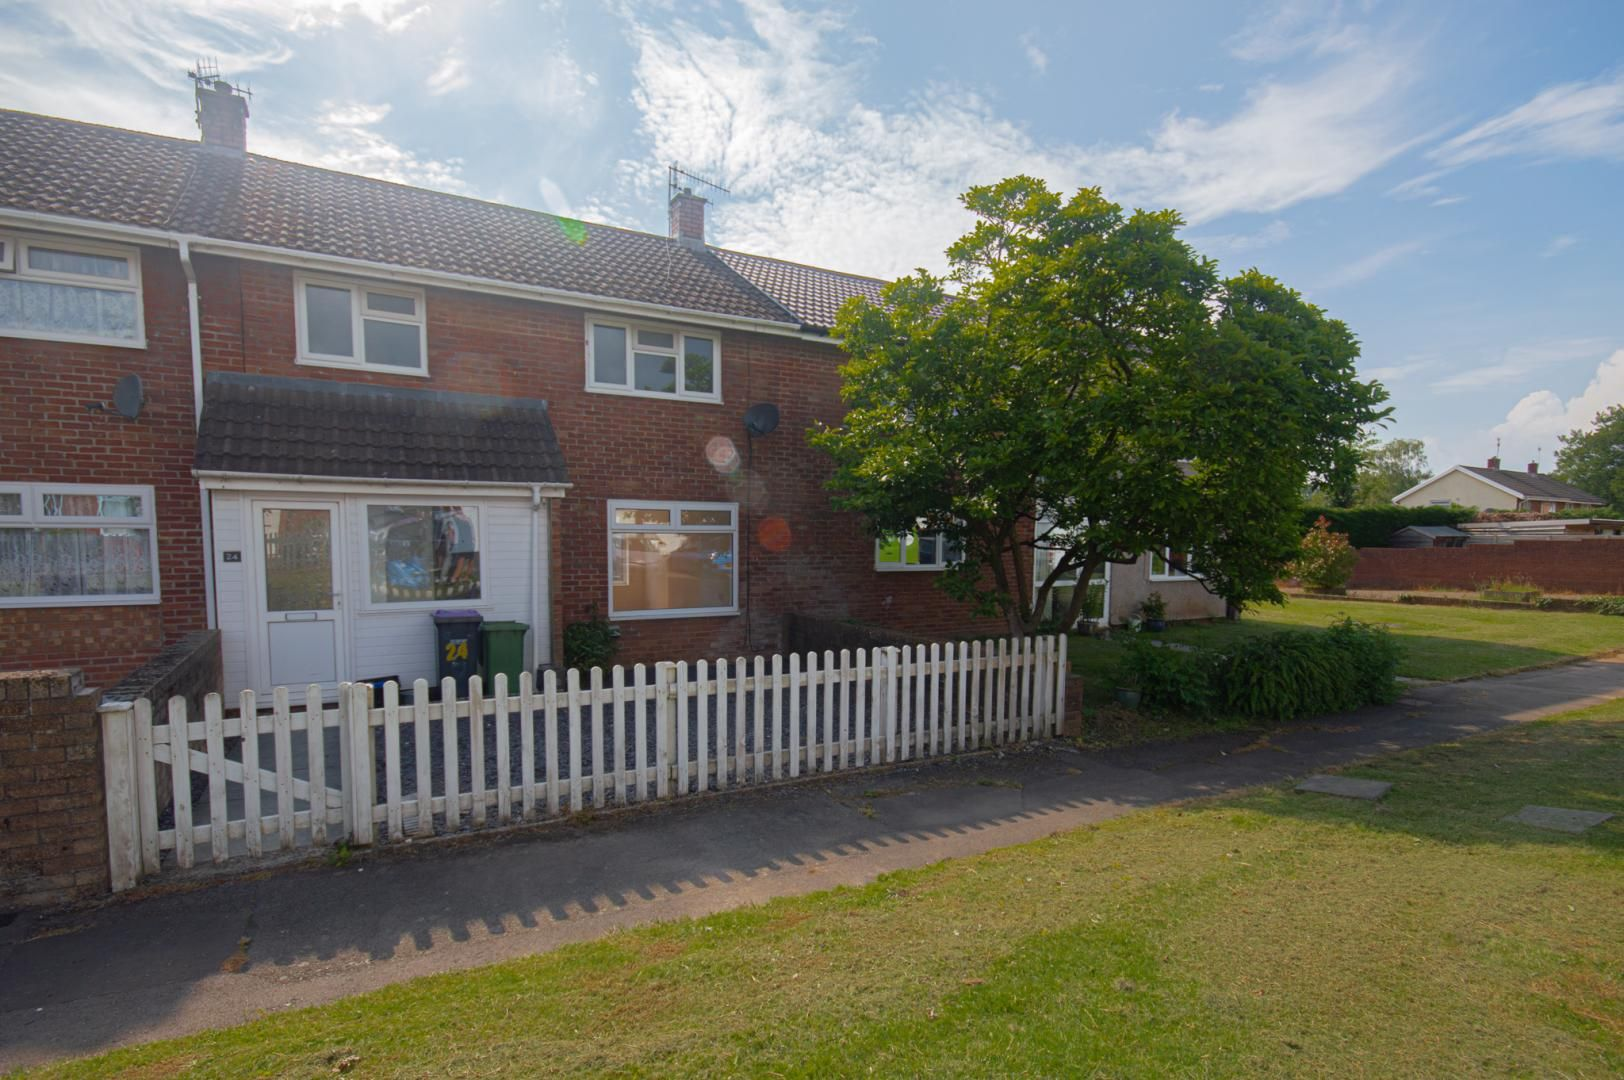 3 bed house to rent in Rumney Walk, NP44